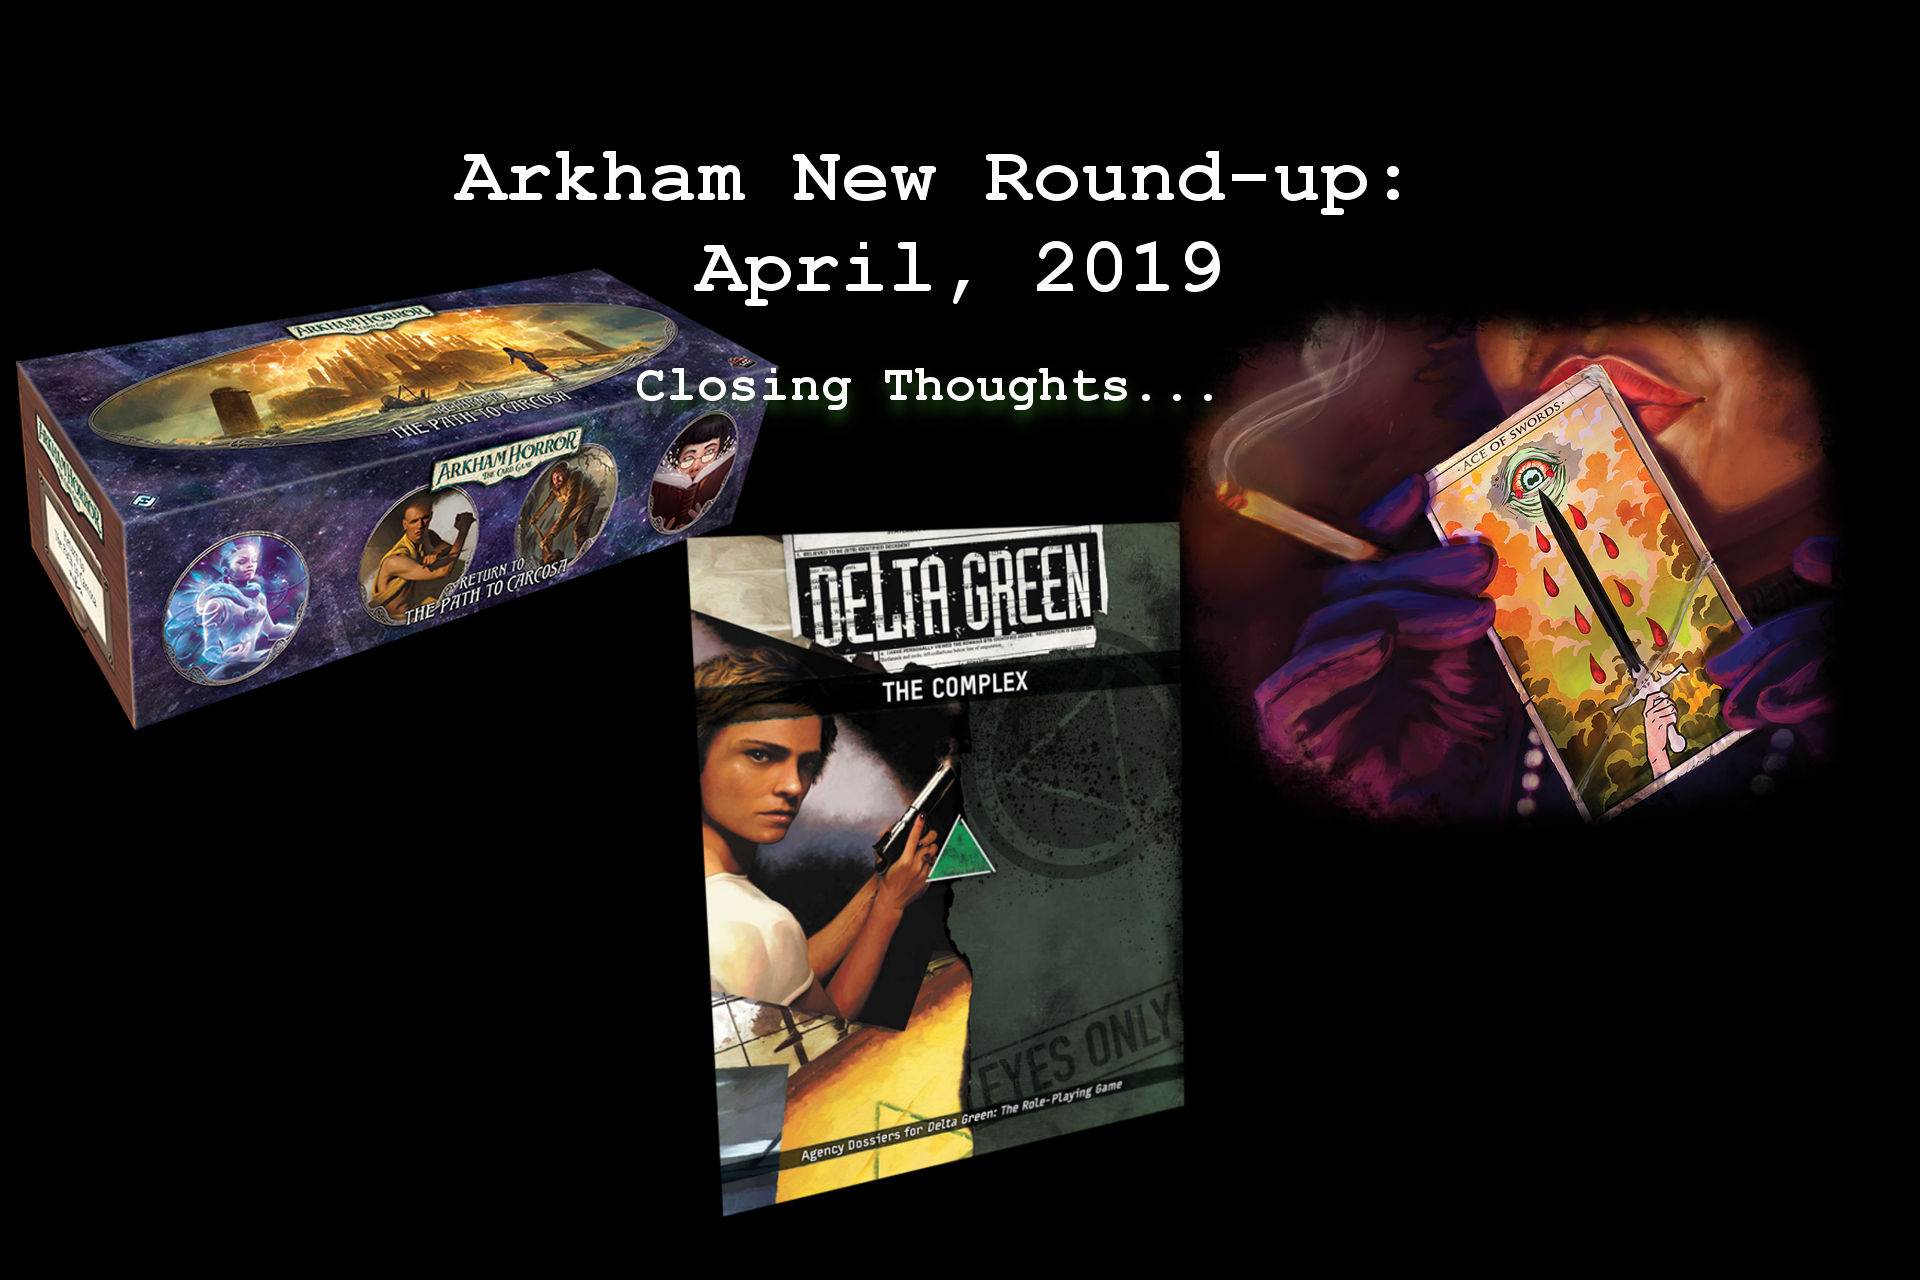 Arkham News Round up April 2019closing thoughts.jpg